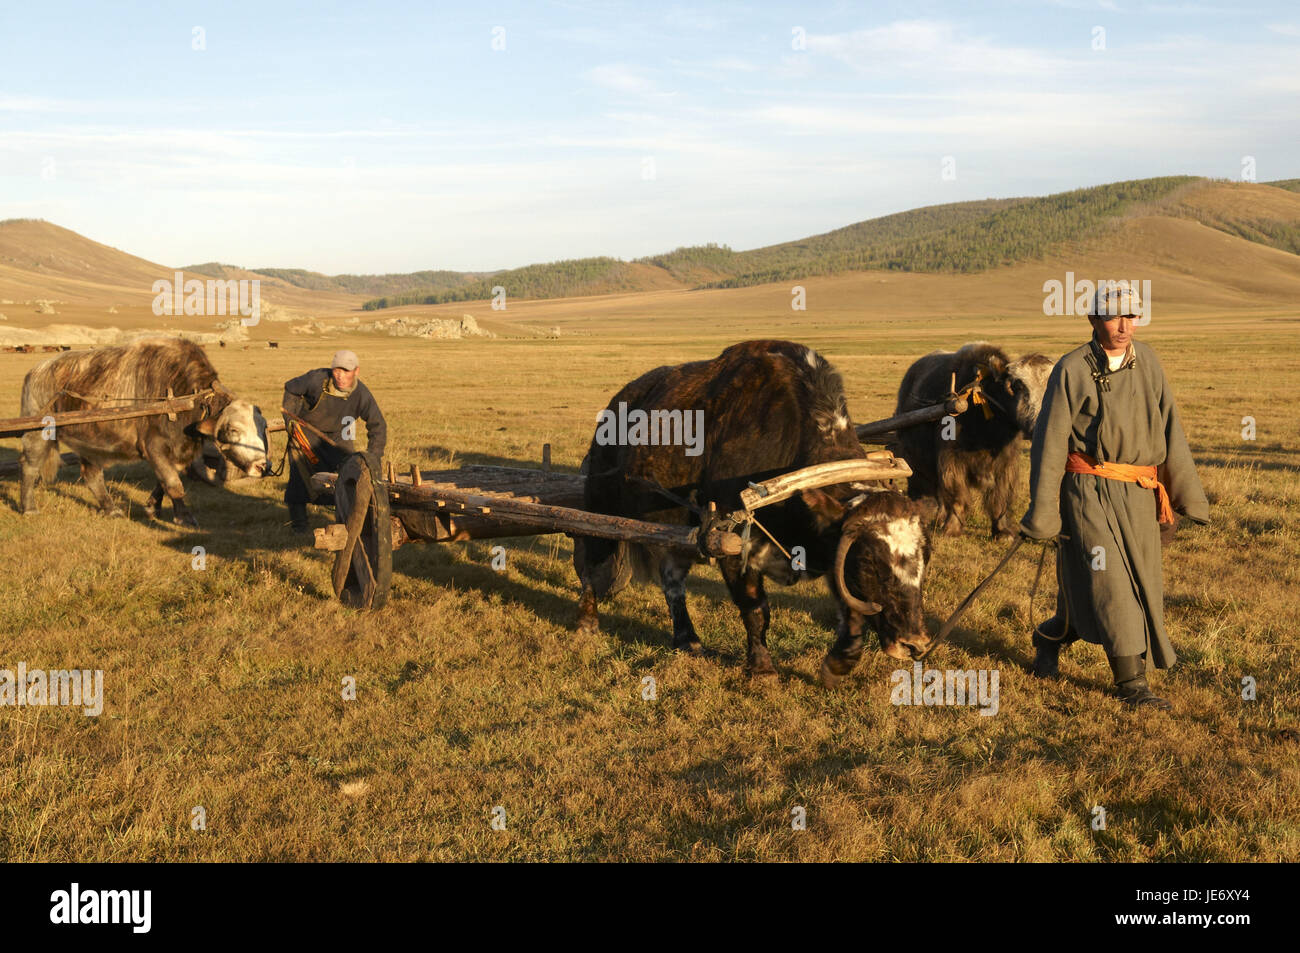 Mongolia, Central Asia, Arkhangai province, nomad, yaks, carriages, - Stock Image